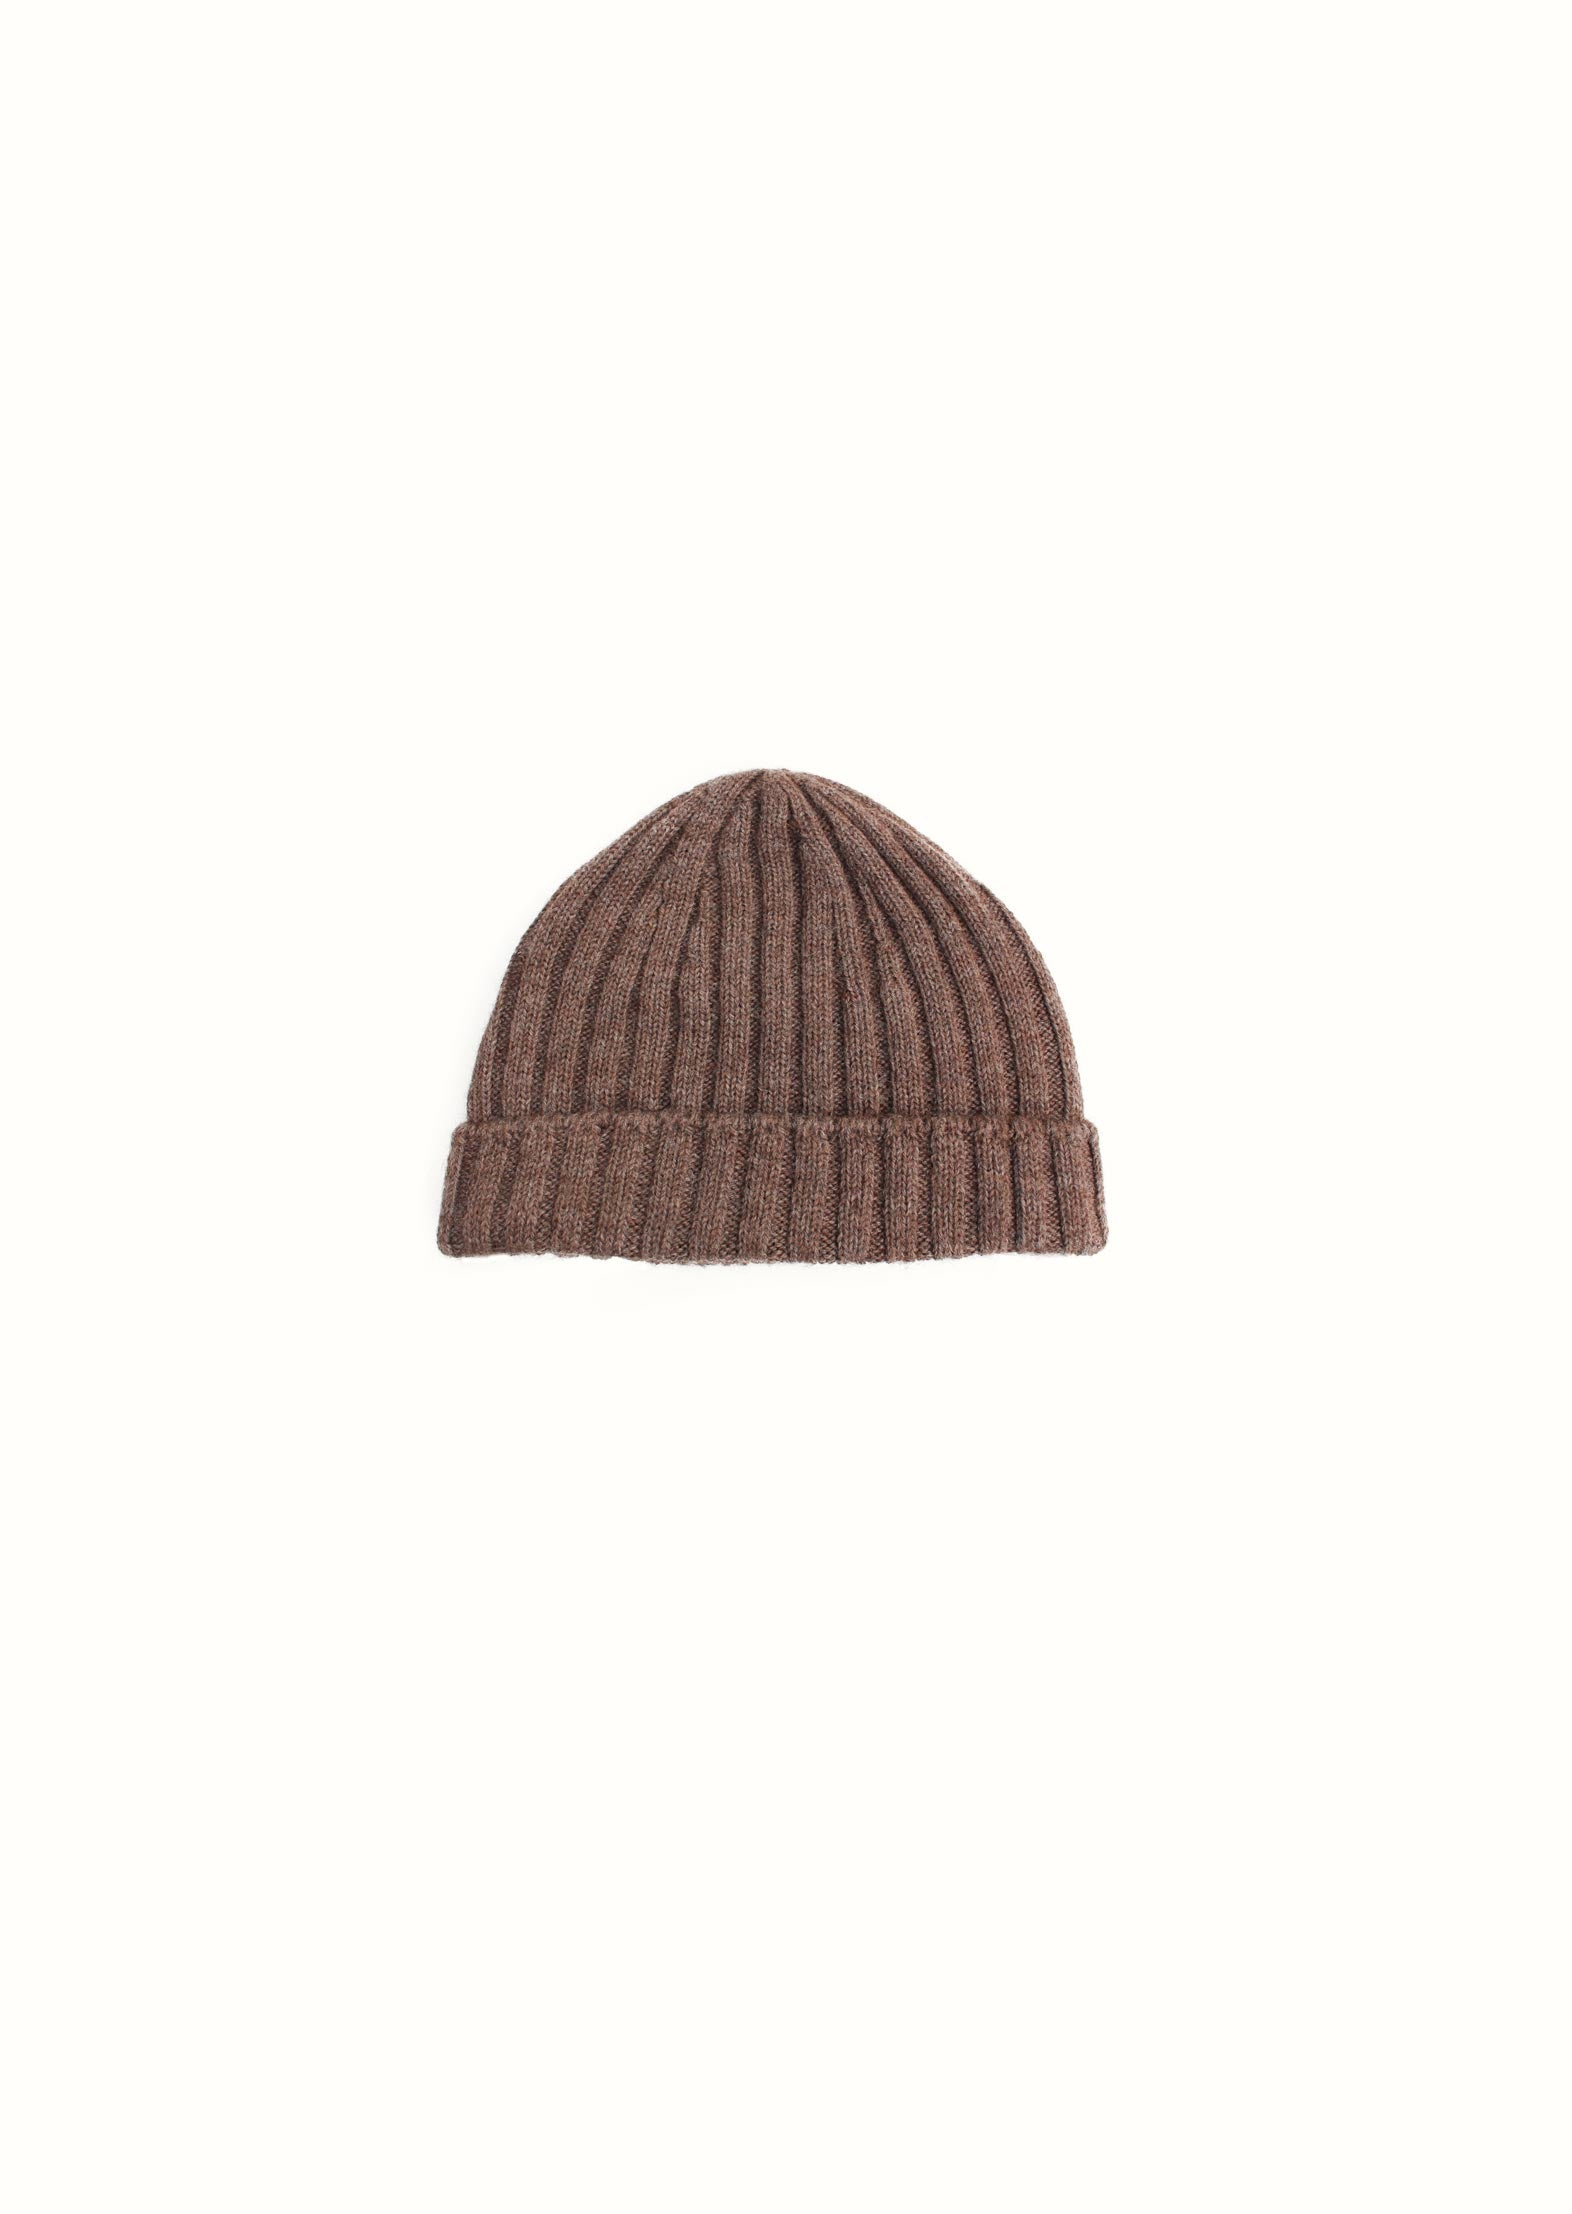 Ribbed beanie -  Wool and alpaca blend - Natural brown - De Bonne Facture